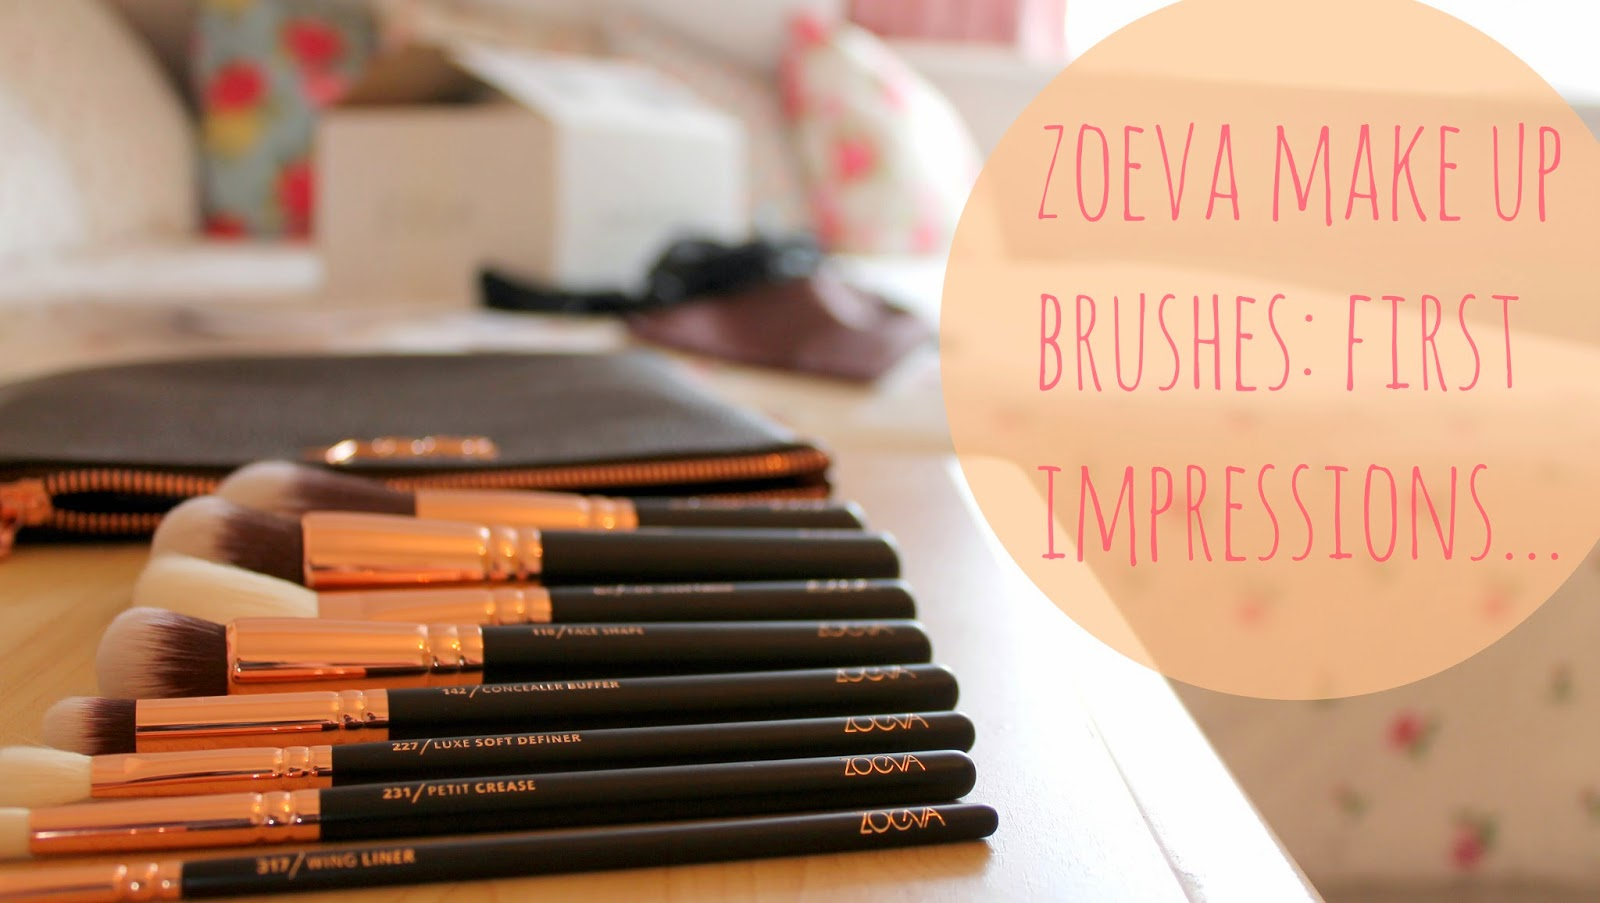 letters of laura zoeva rose gold brushes first impressions during my morning filled essay writing the doorbell rang and i can t say i ve been much more excited for a parcel than i was this morning saddo